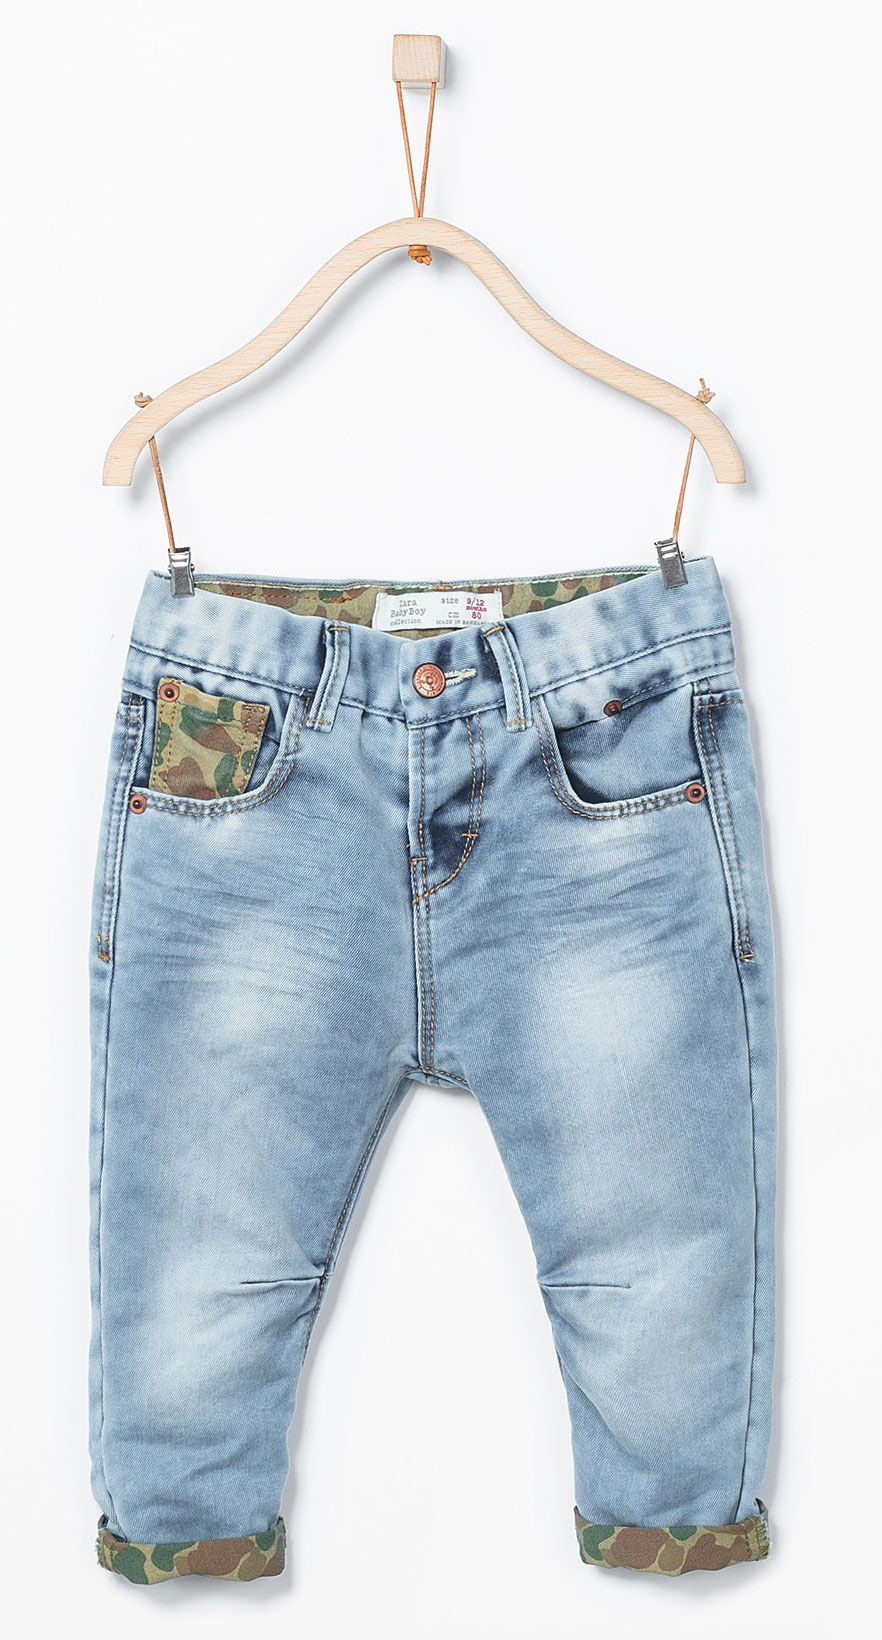 0f346ab59 Pin by PePSi on kids wear boys. | Boys jeans, Girls jeans, Baby jeans